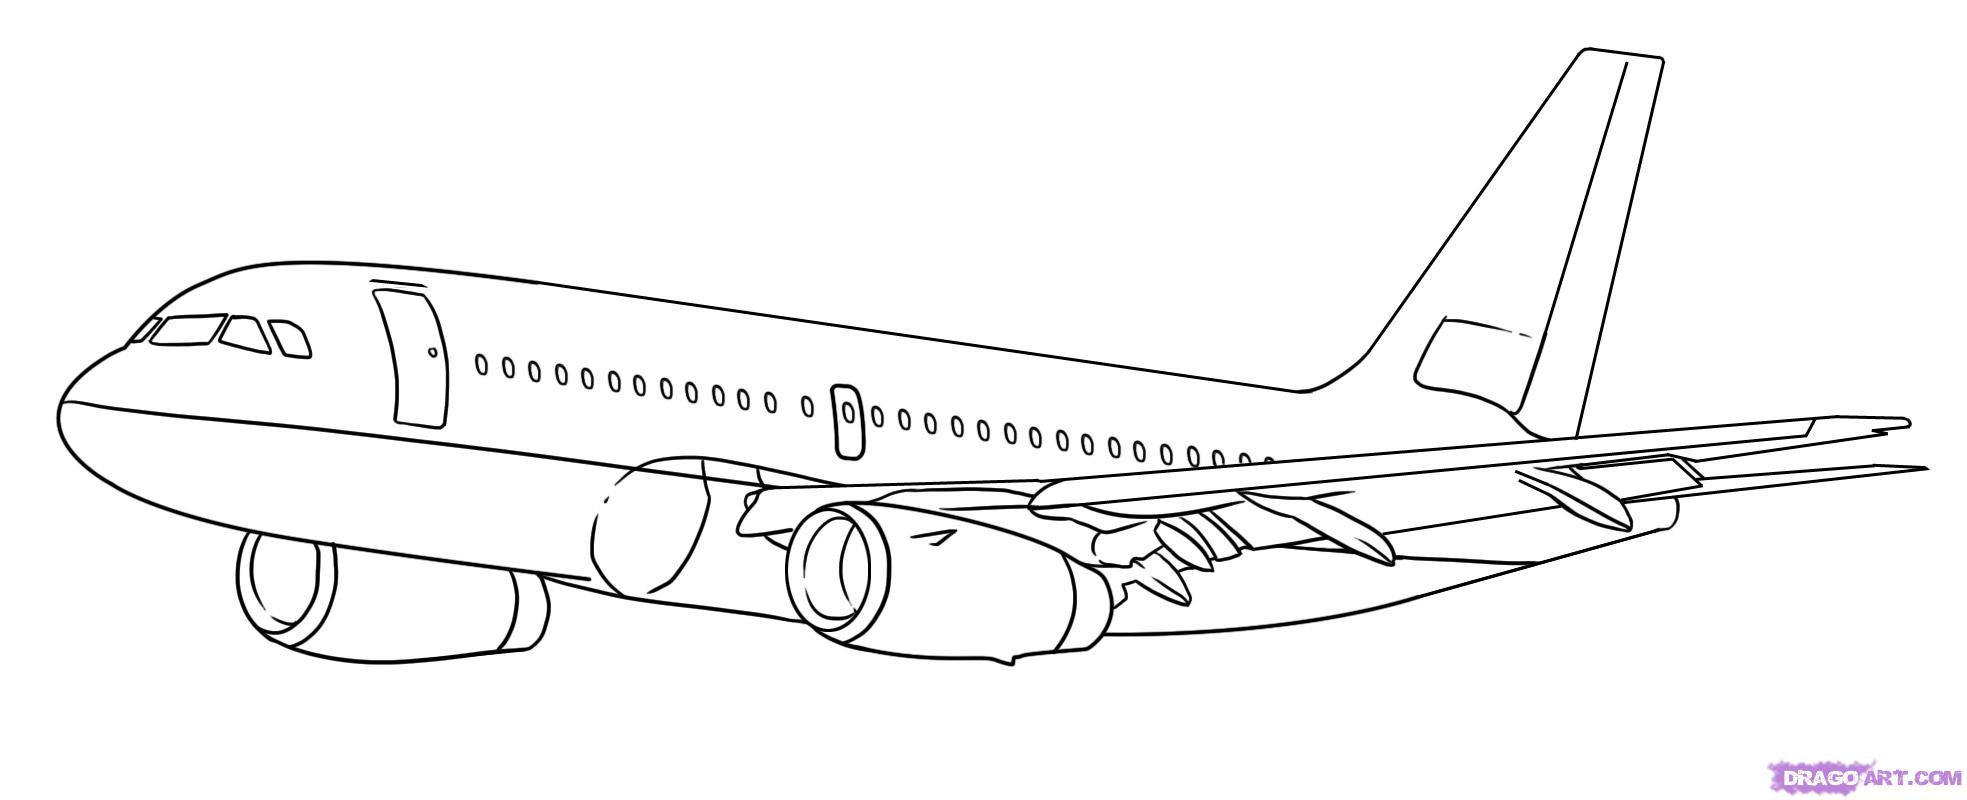 Drawn airplane #3